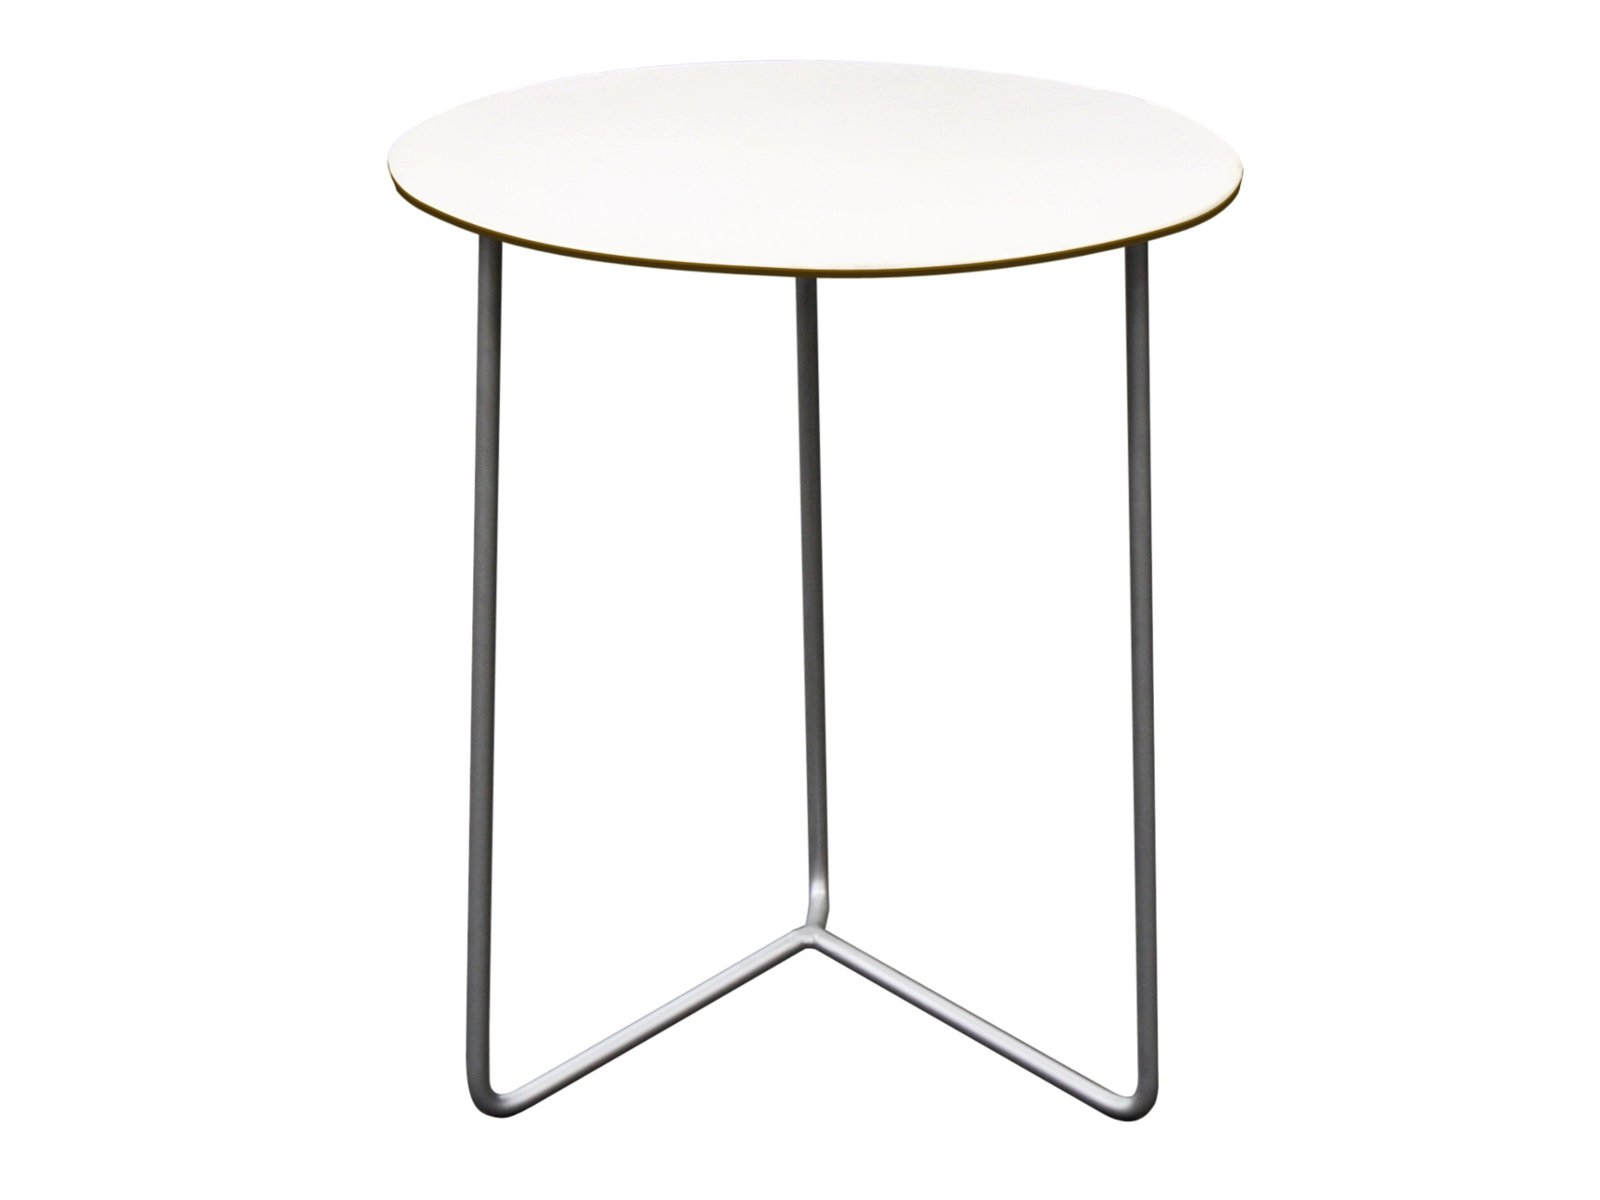 High Tech Garden Side Table By Grythyttan Stålmöbler. Oak Cabinet Kitchens. Kitchen Cabinet Height 8 Foot Ceiling. Mobile Kitchen Cabinets. Fixing Kitchen Cabinet Hinges. Paint Metal Kitchen Cabinets. Can I Buy Kitchen Cabinet Doors Only. Espresso Kitchen Cabinets With Black Appliances. Utility Cabinet Kitchen